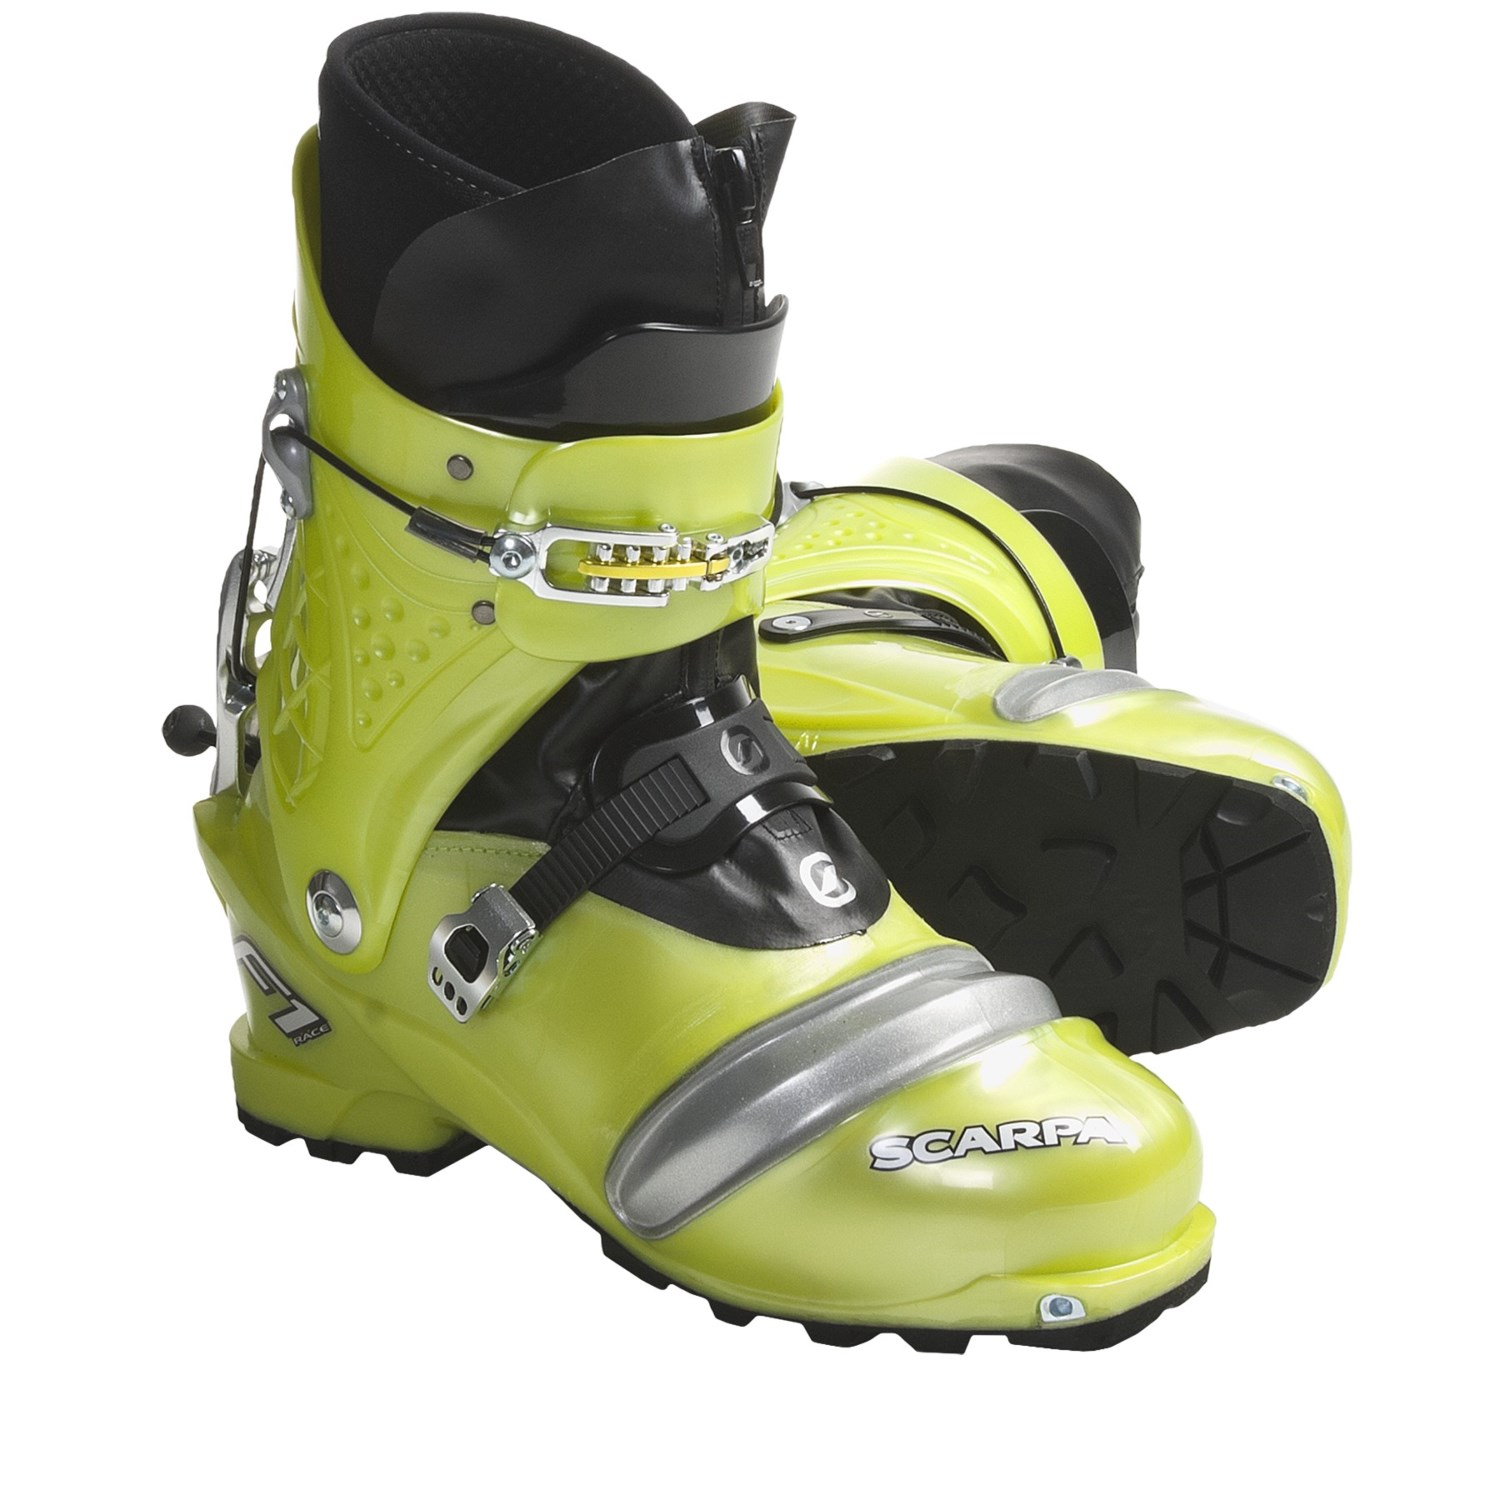 Scarpa F1 Race At Ski Boots For Men And Women 4919r